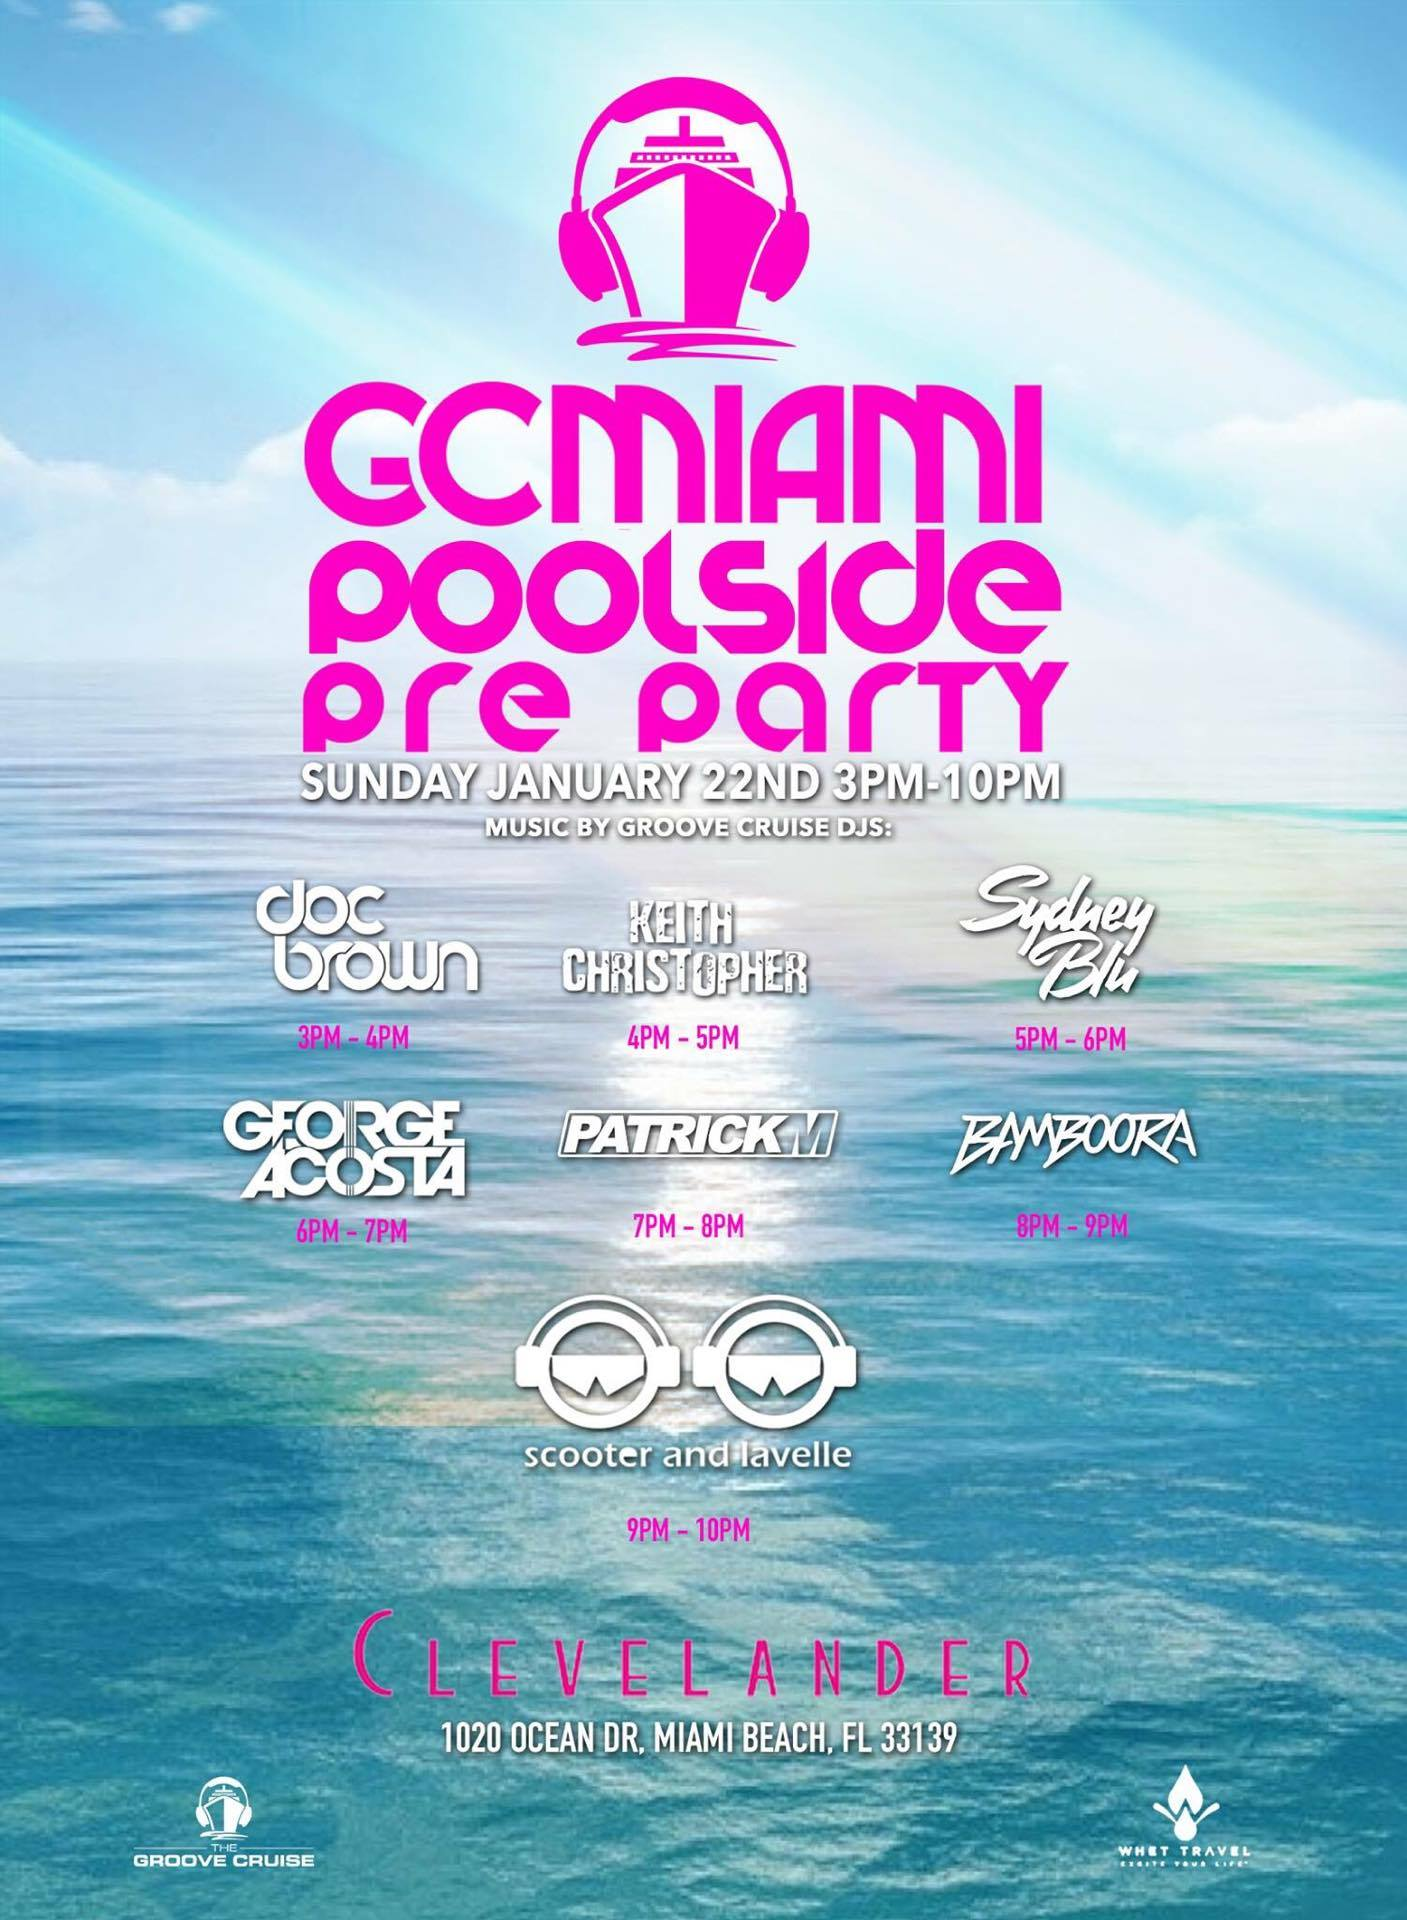 The Groove Cruise #GCMIAMI Poolside Pre-Party – Clevelander – Miami Beach, FL